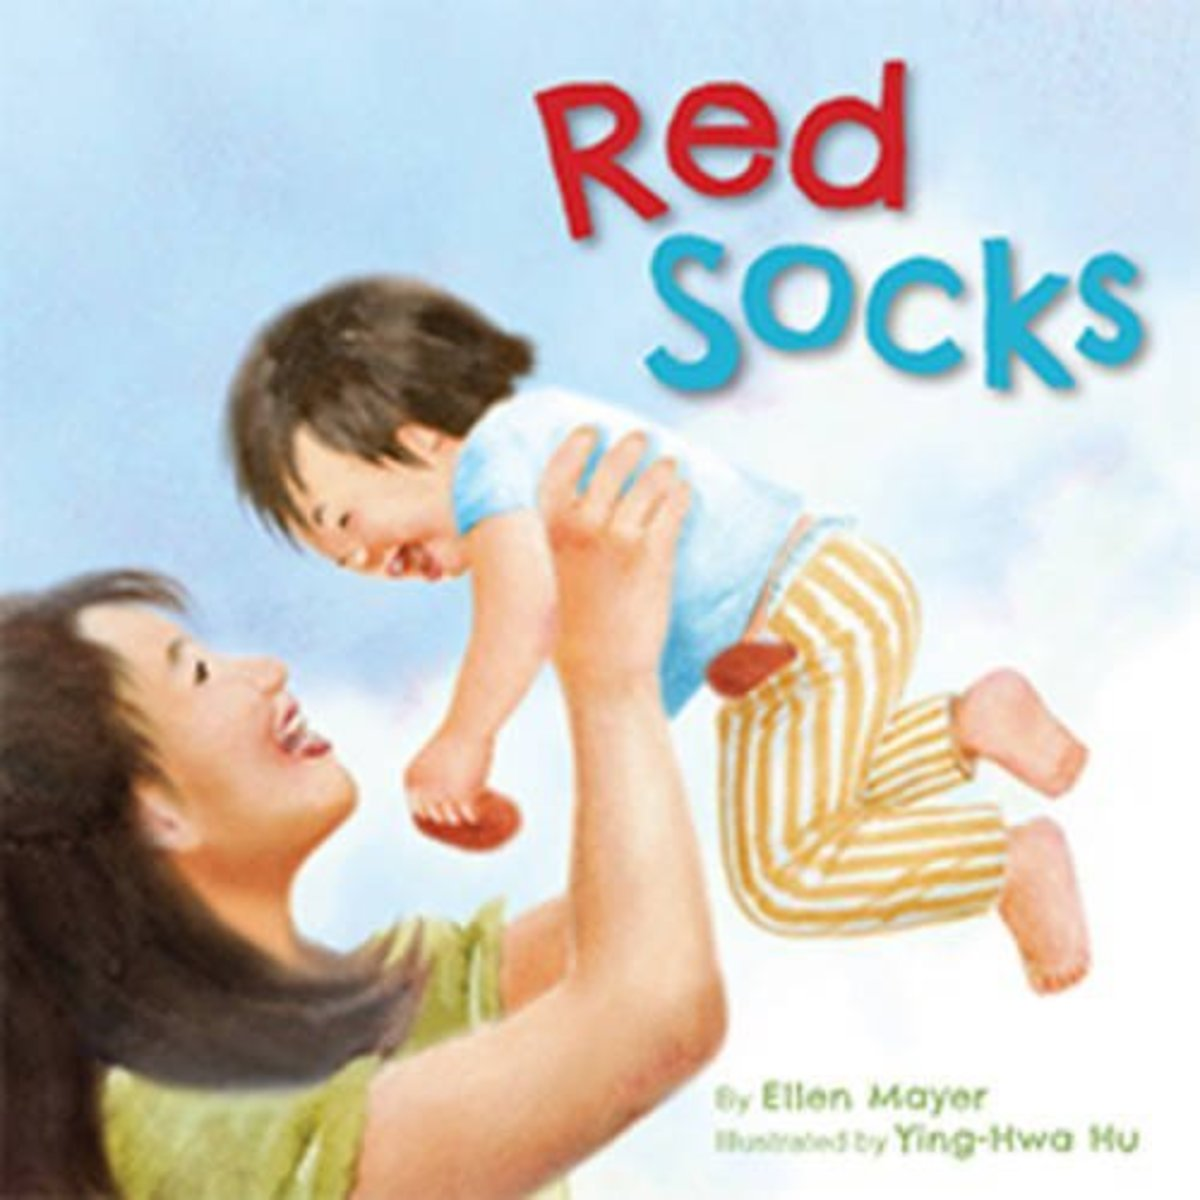 Red Socks by Ellen Mayer